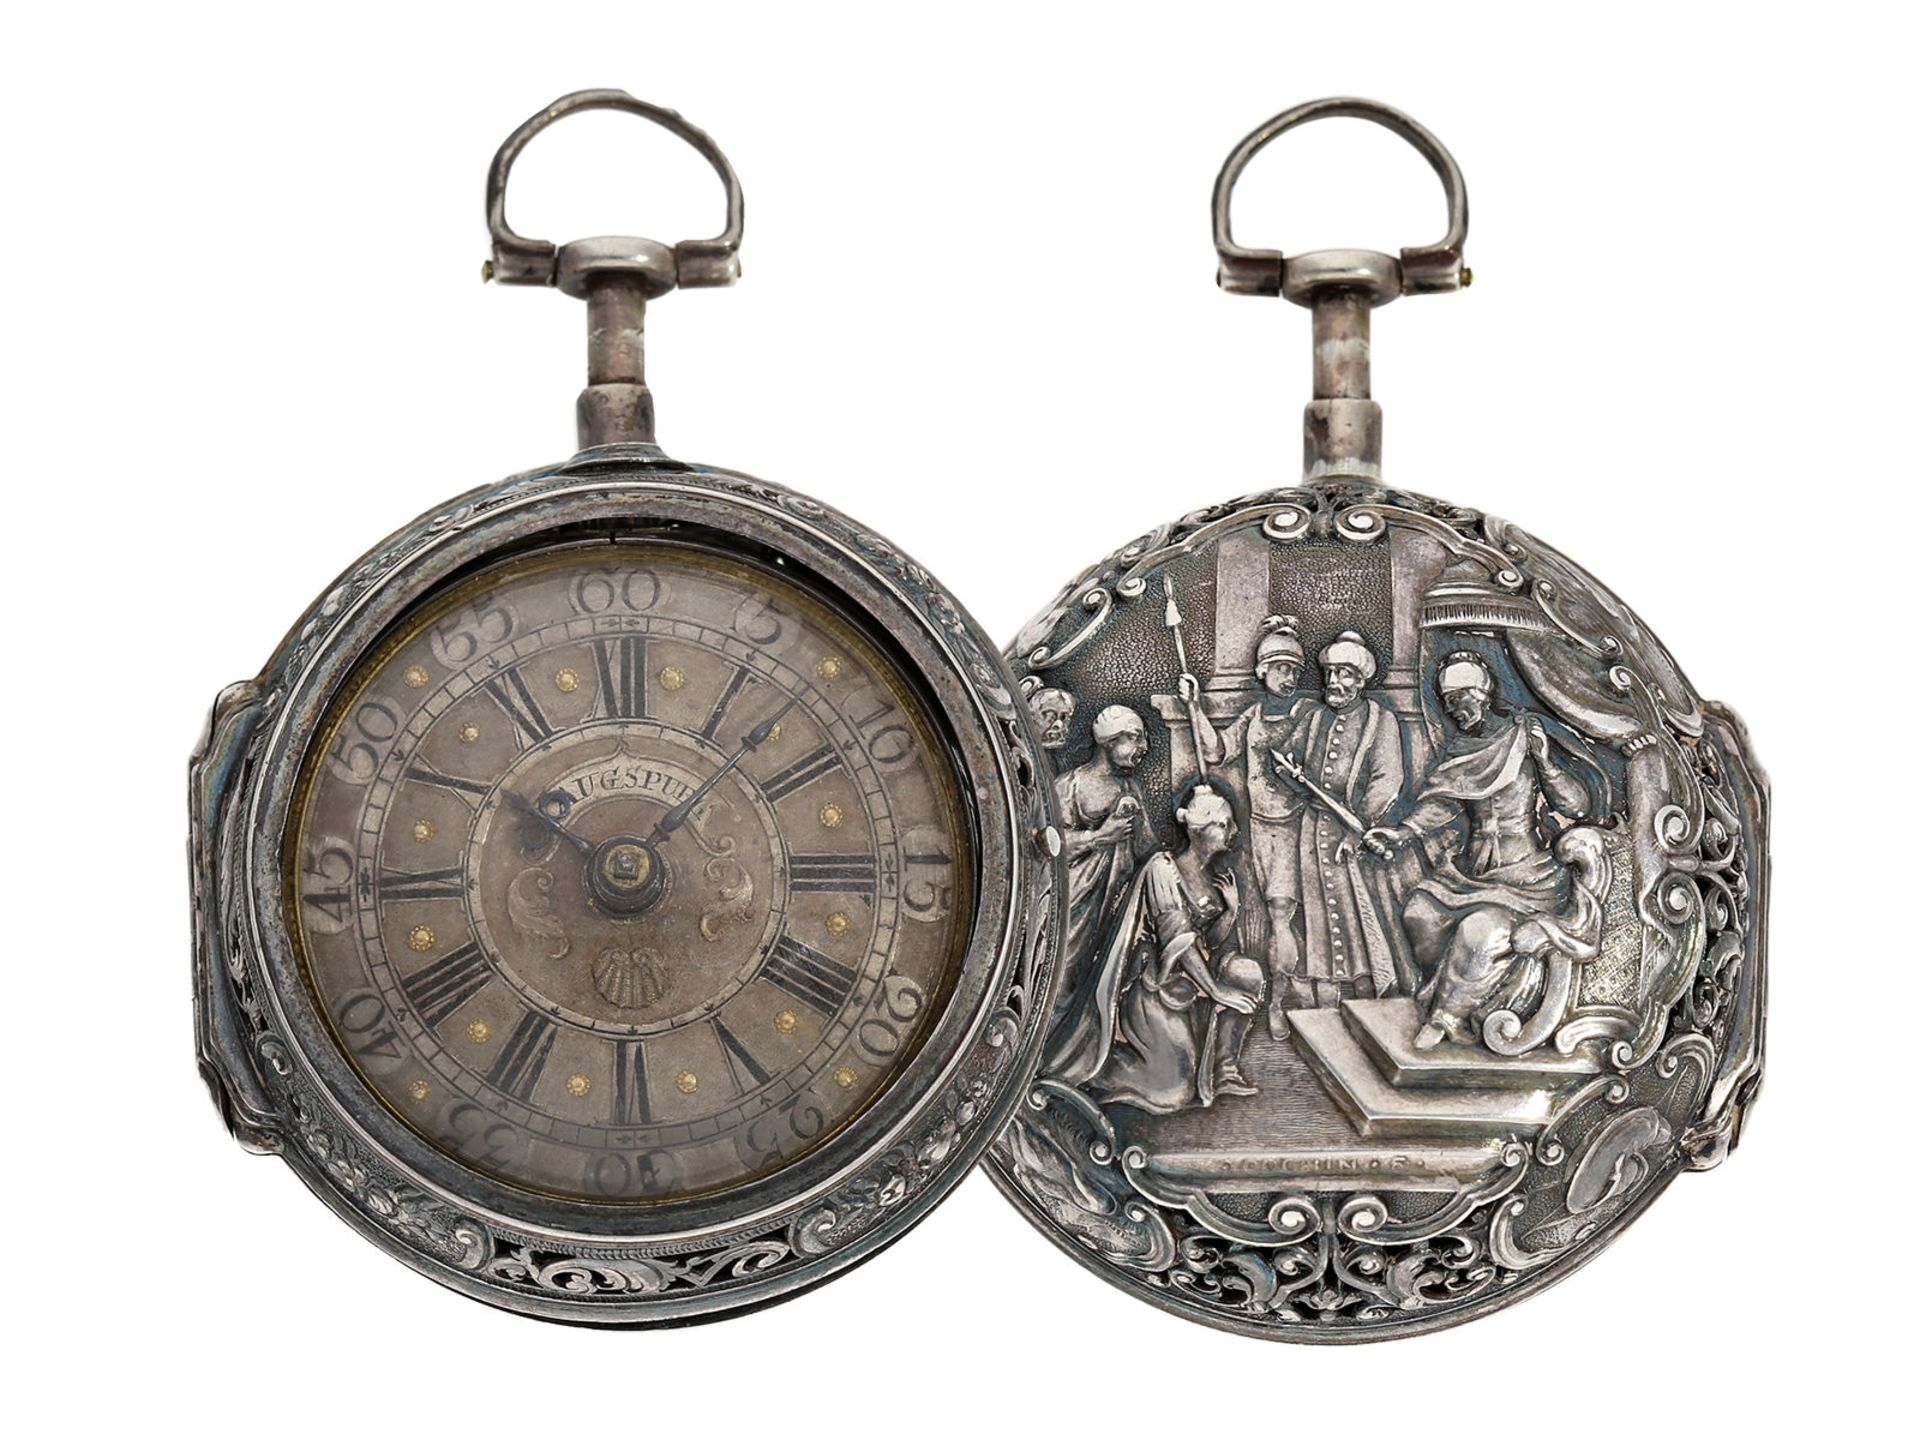 Pocket watch: Augsburg pair case repousse verge watch with relief case in exceptional quality and